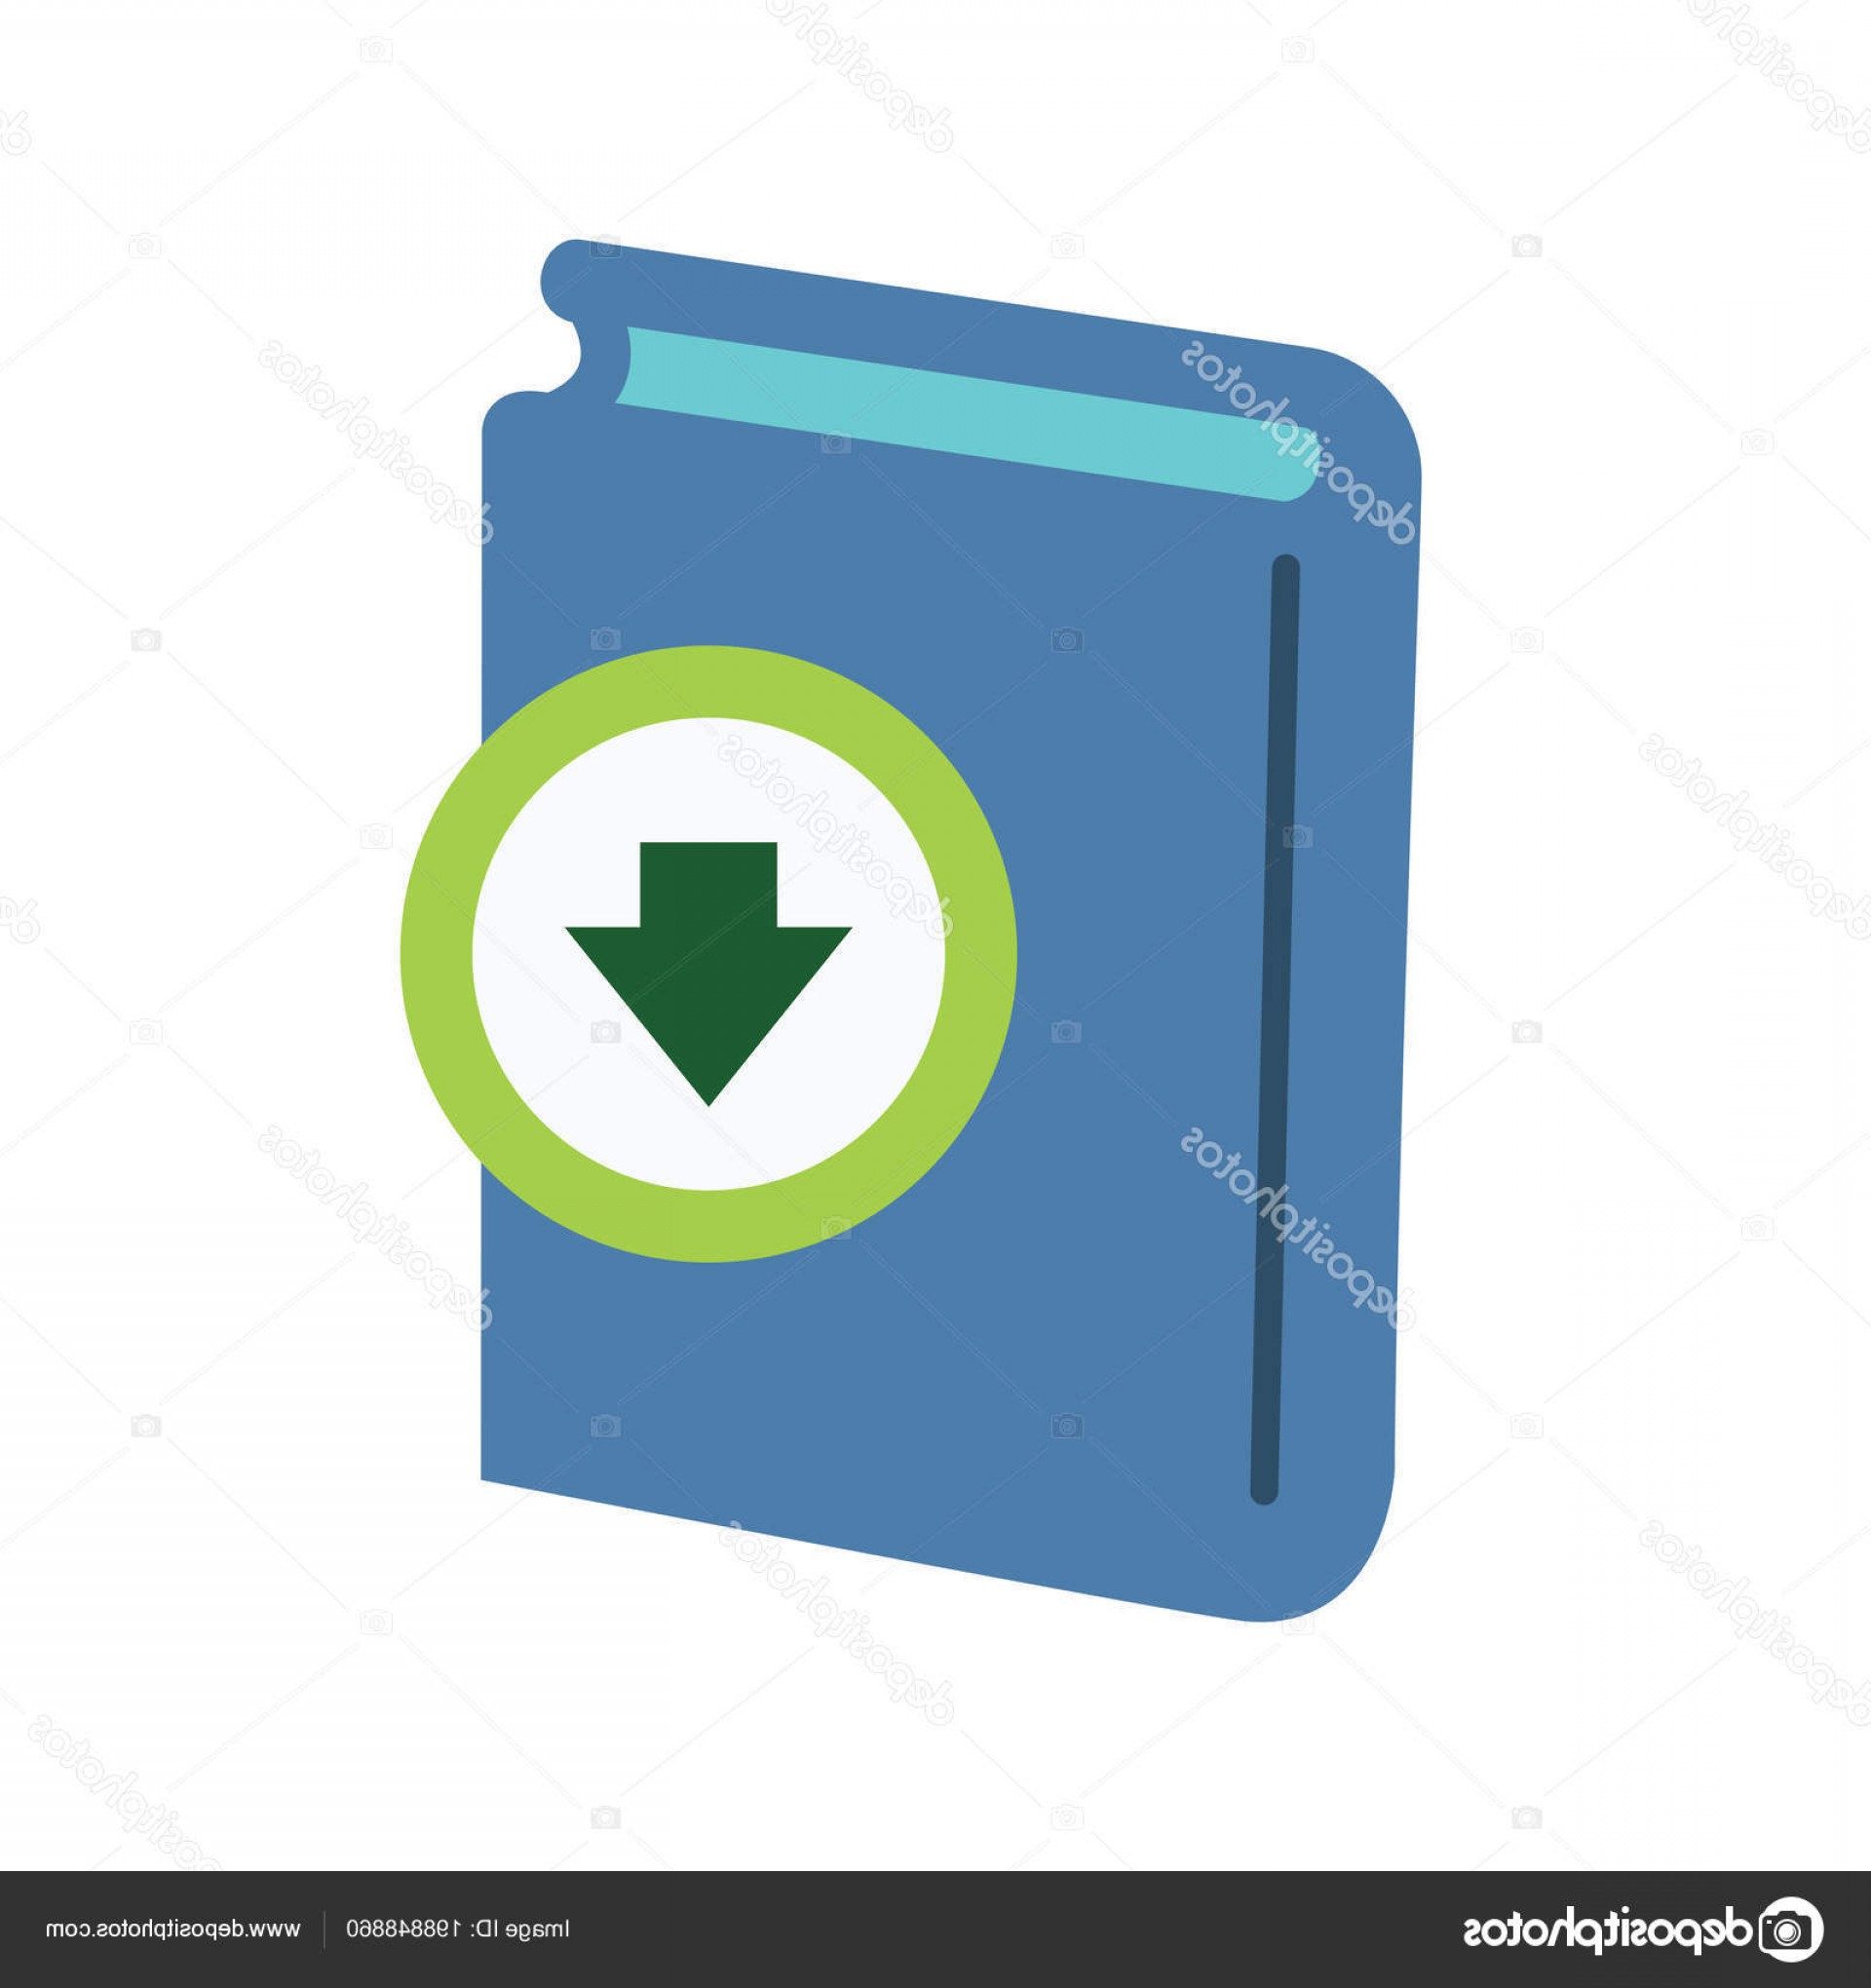 Vectores Para Descargar Gratis: Stock Illustration Whitepaper Ebook Cta Cover Download